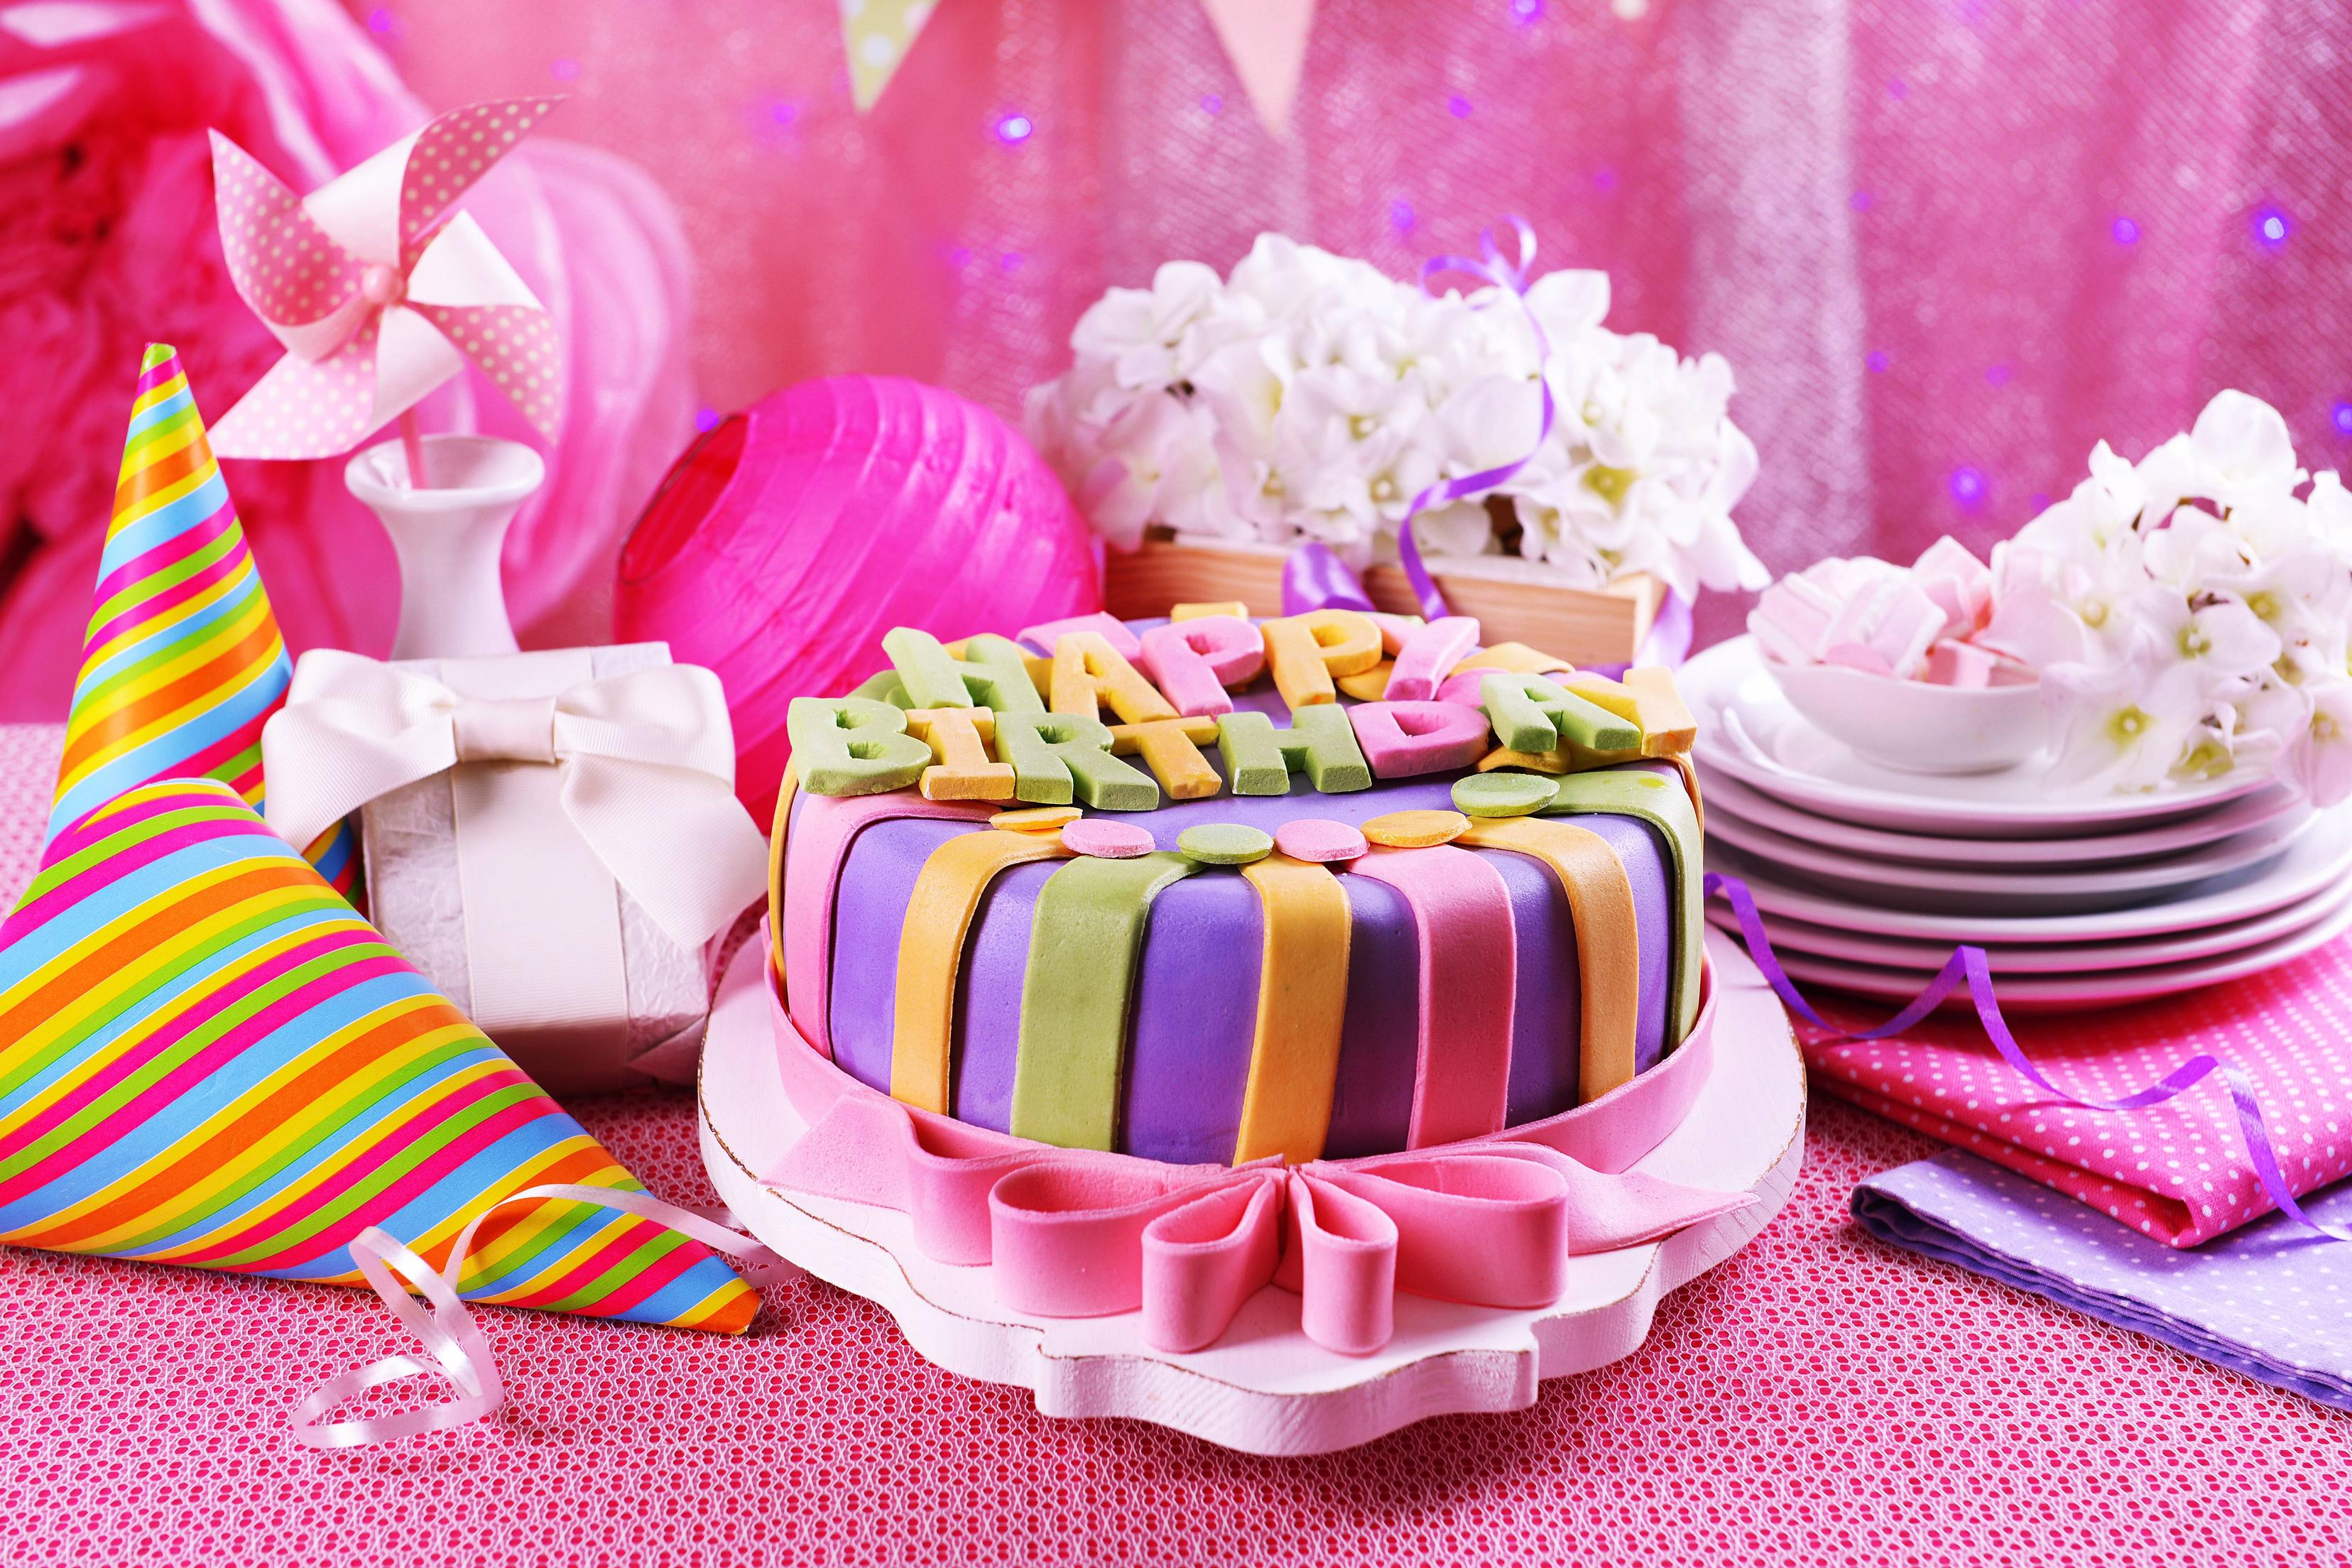 2048x1152 Pink Birthday Cake 2048x1152 Resolution Hd 4k Wallpapers